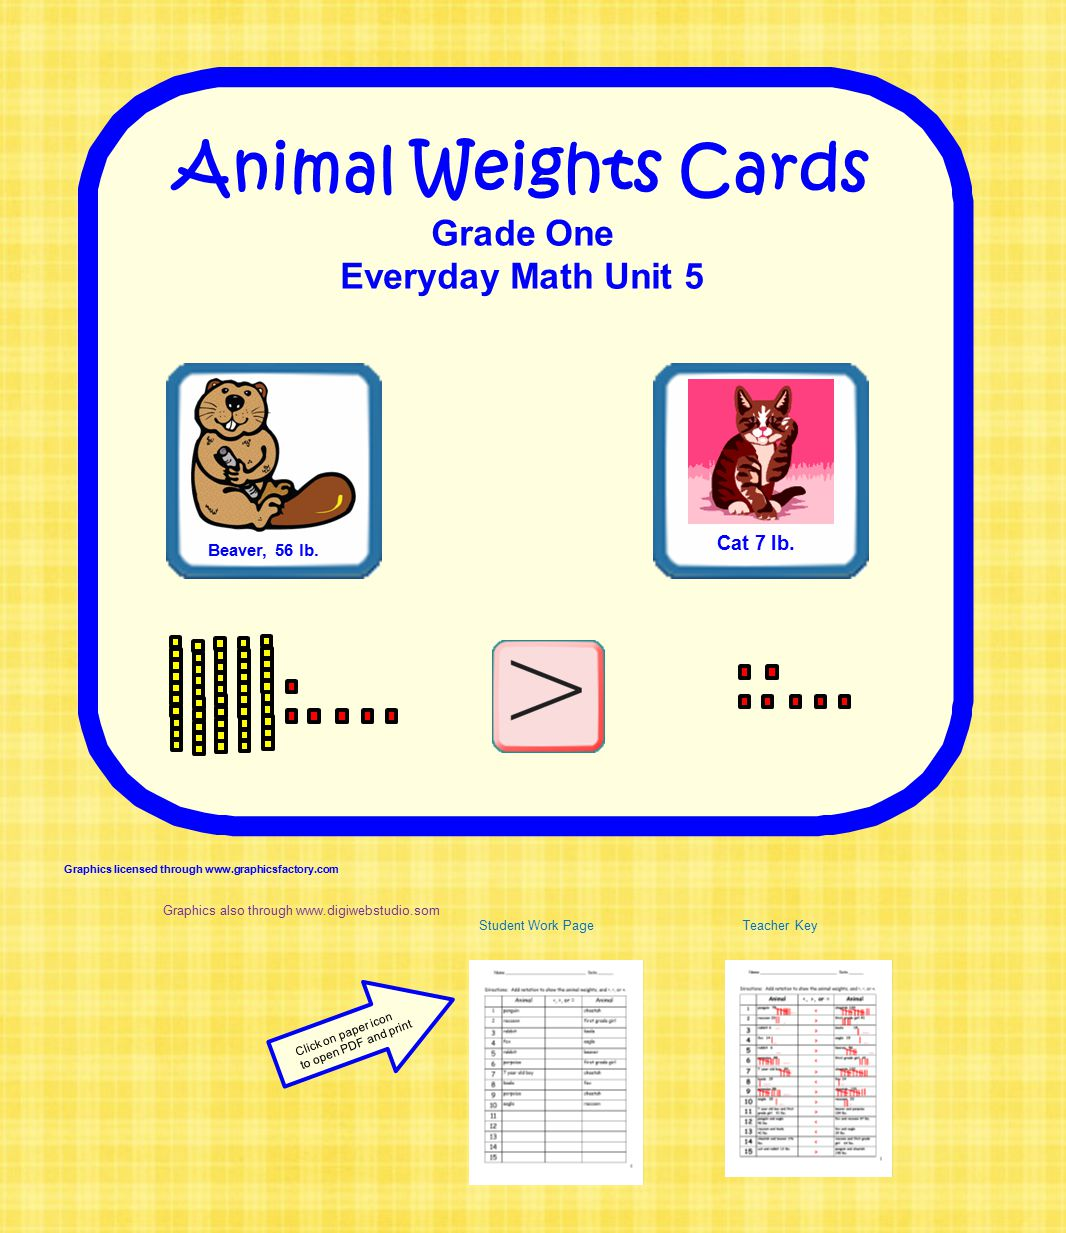 Animal Weights Cards Grade One Everyday Math Unit 5 Cat 7 lb.